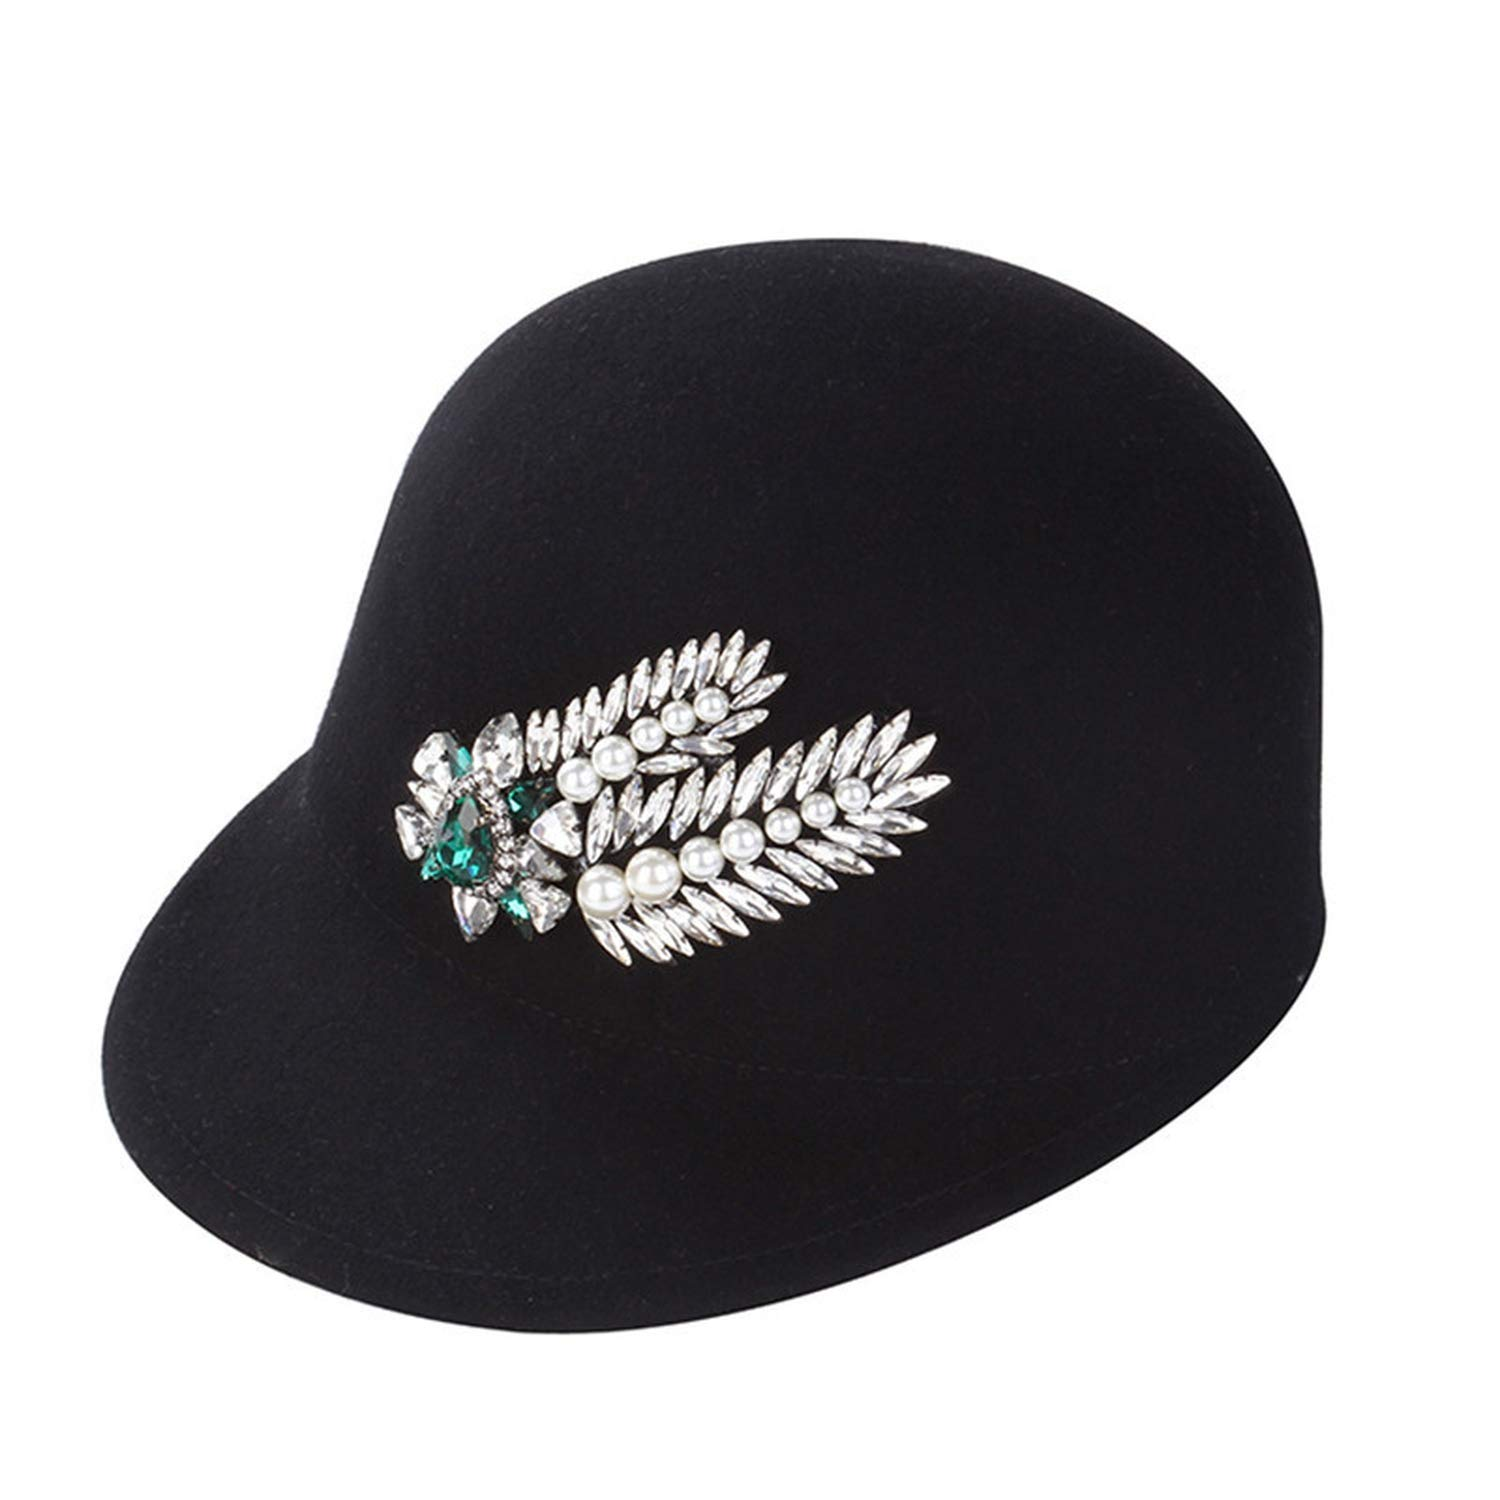 3 Xivikow 2019 Fashion Korean Fashion Wool Feather Lady hat Women Fashion hat 650